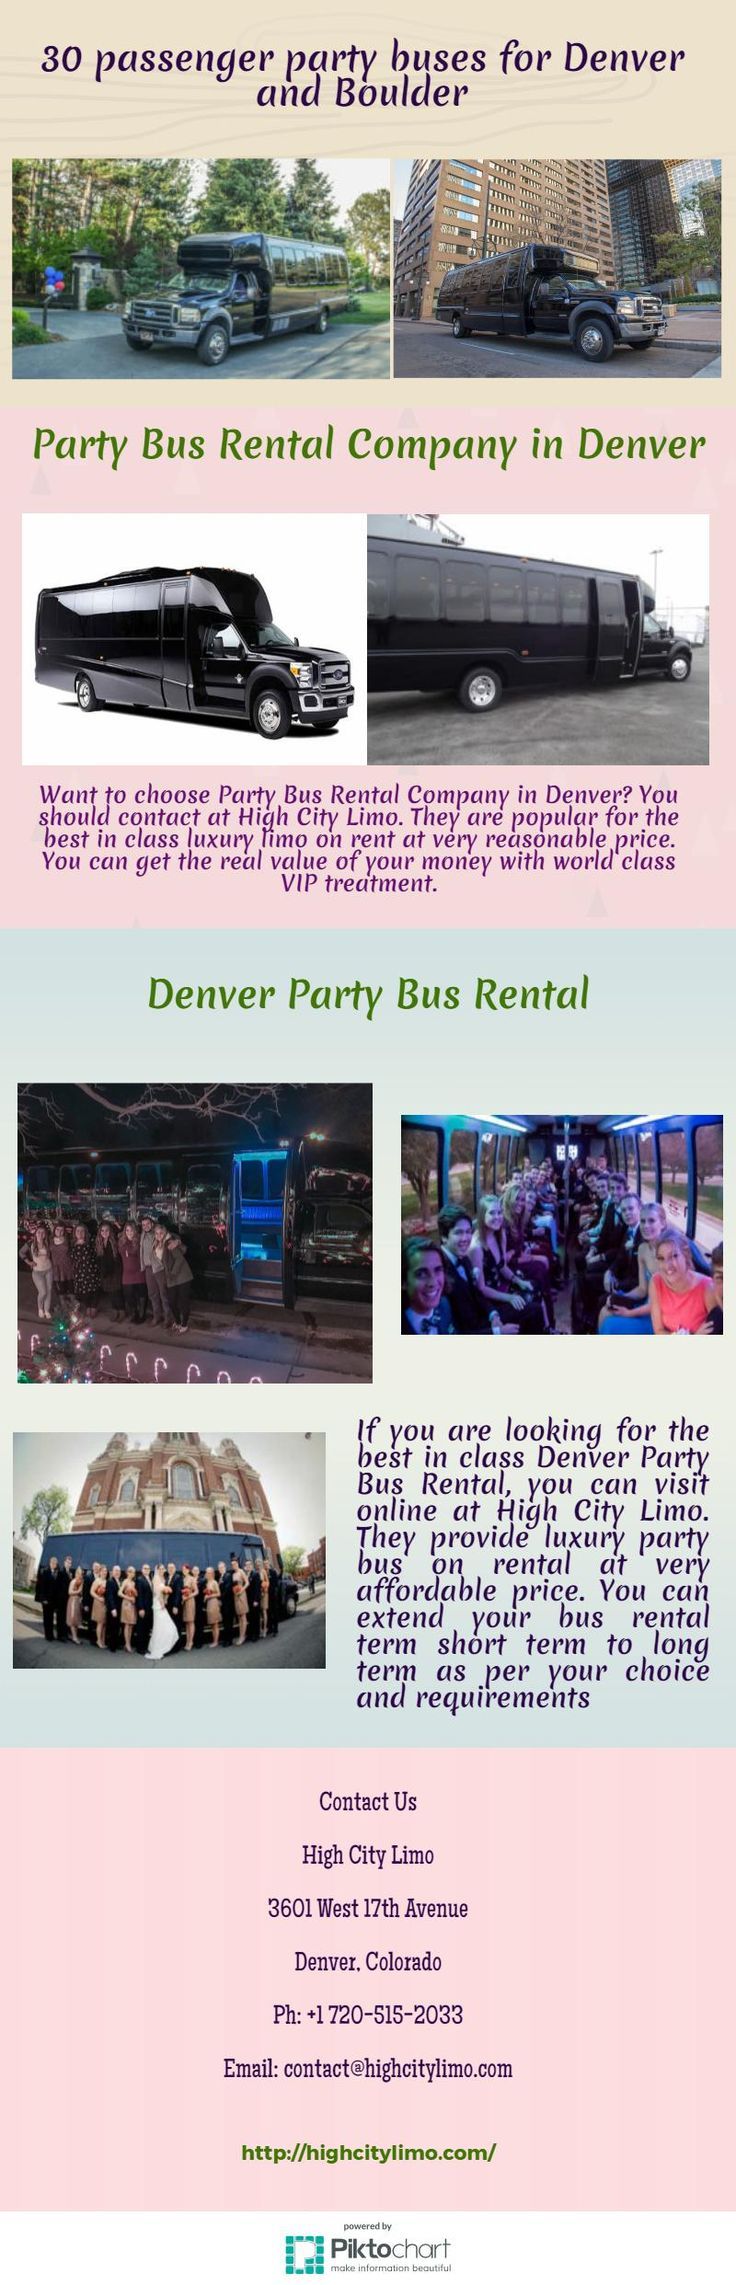 If you are looking for the best in class Denver Party Bus Rental, you can visit online at High City Limo. They provide luxury party bus on rental at very affordable price. You can extend your bus rental term short term to long term as per your choice and requirements.